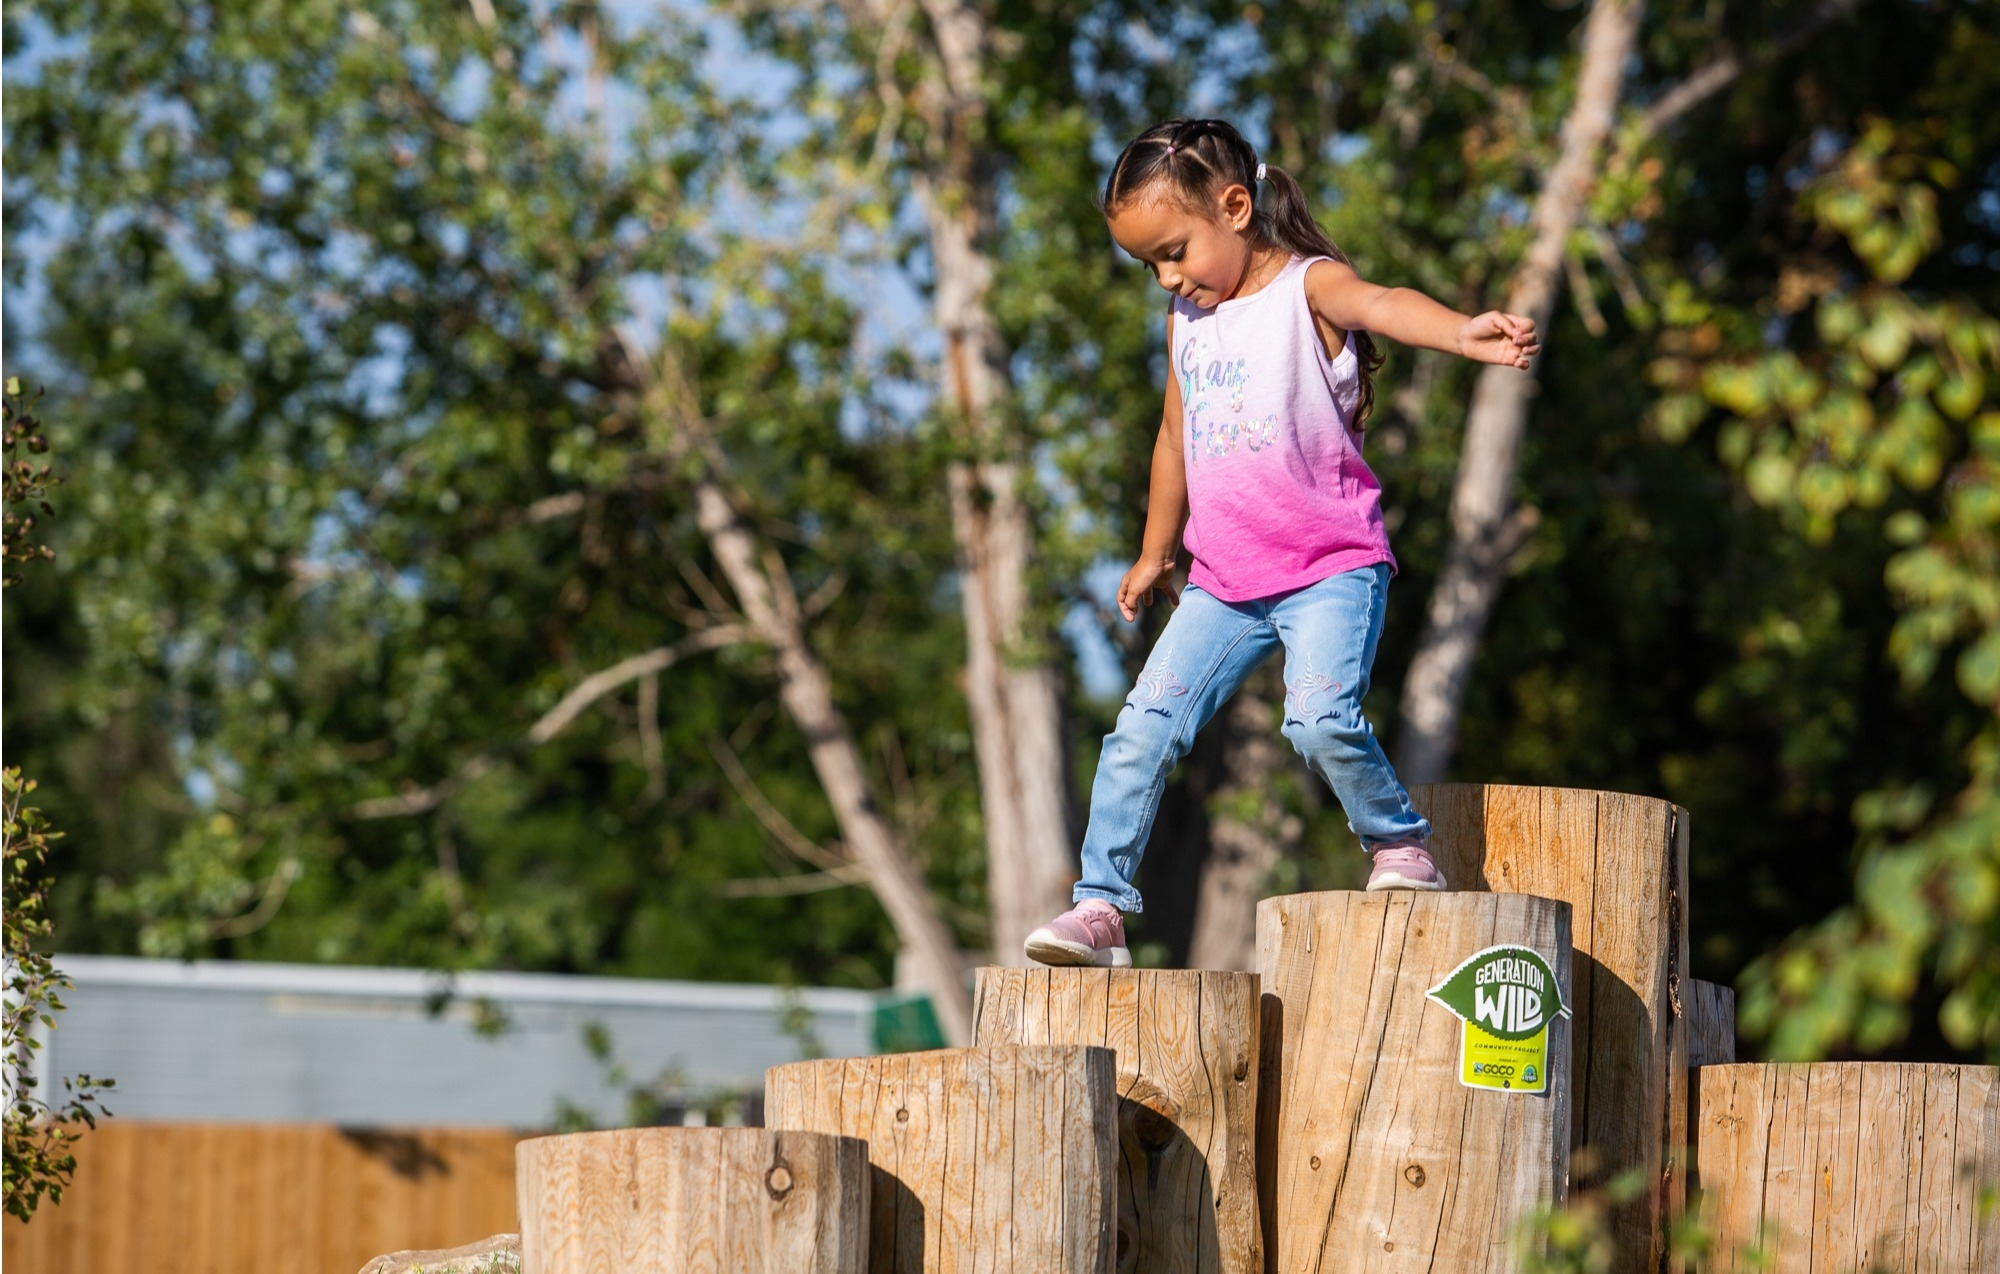 Help Your Little Ones Enjoy the Benefits of the Great Outdoors